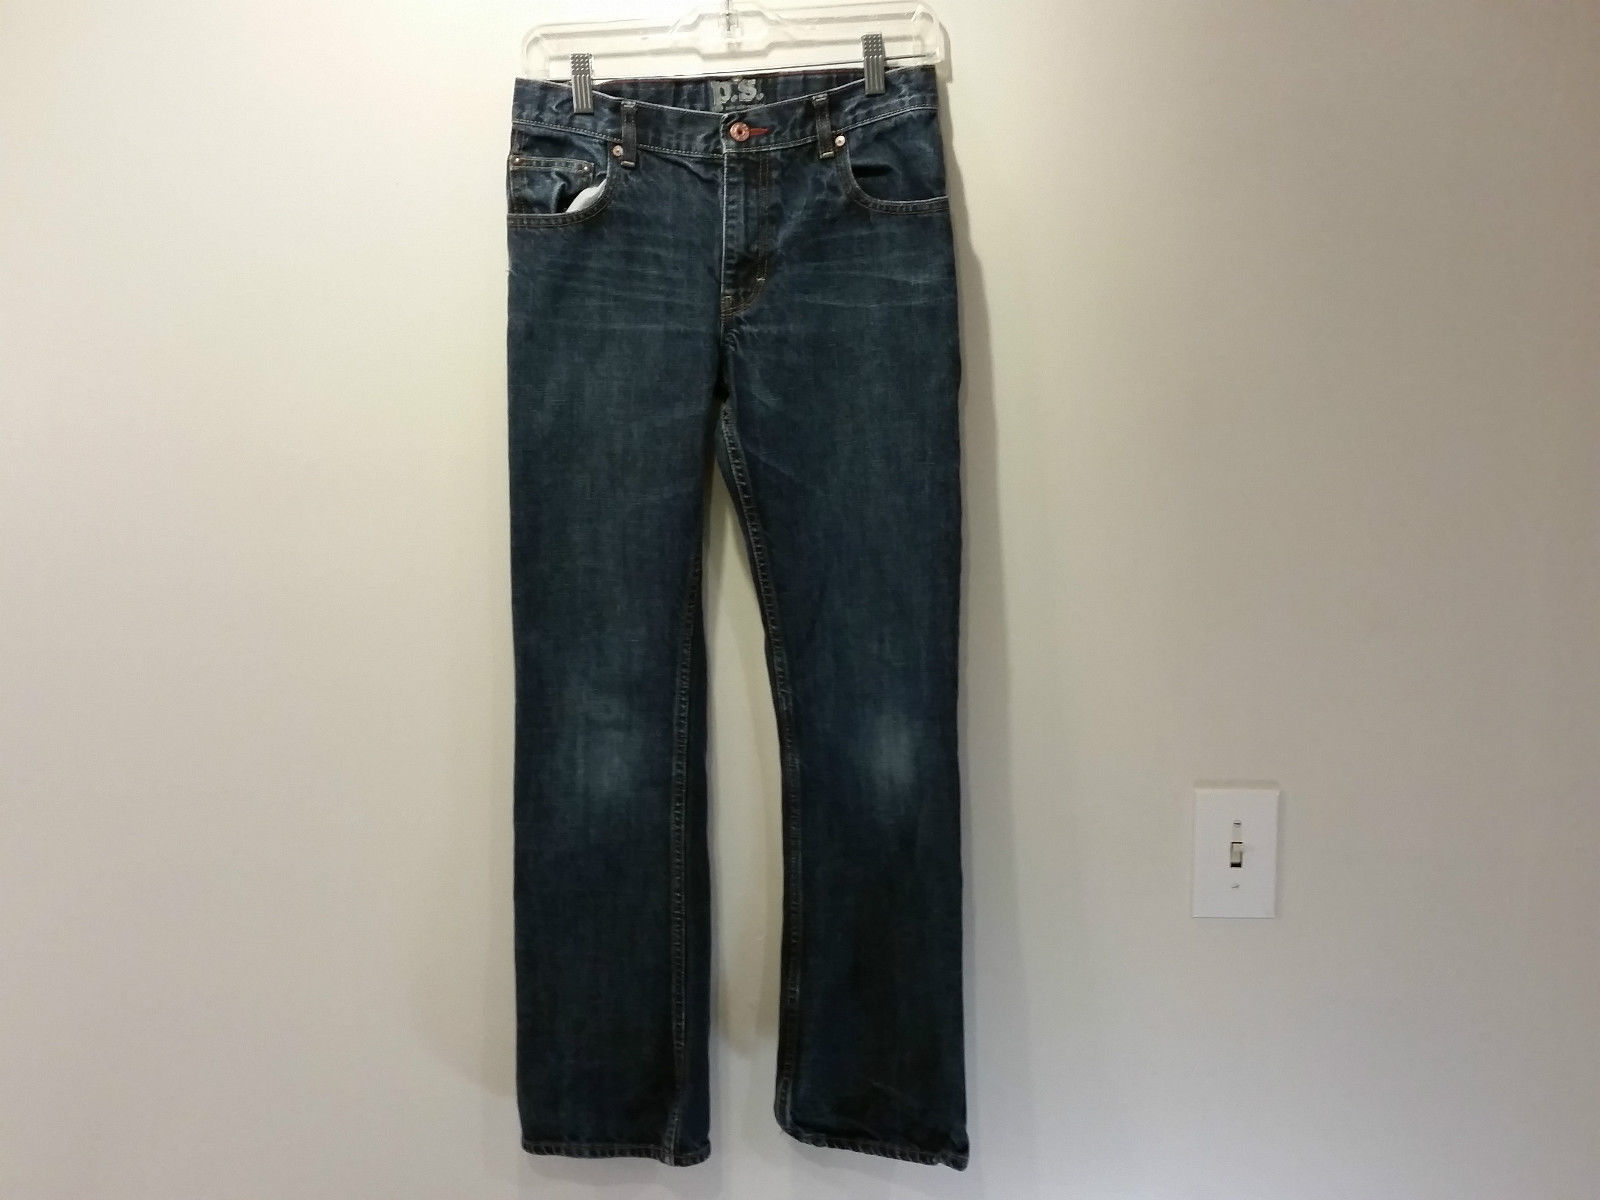 P S for Aeropostale Dark Blue Jeans Size 14R Great Condition Straight Leg